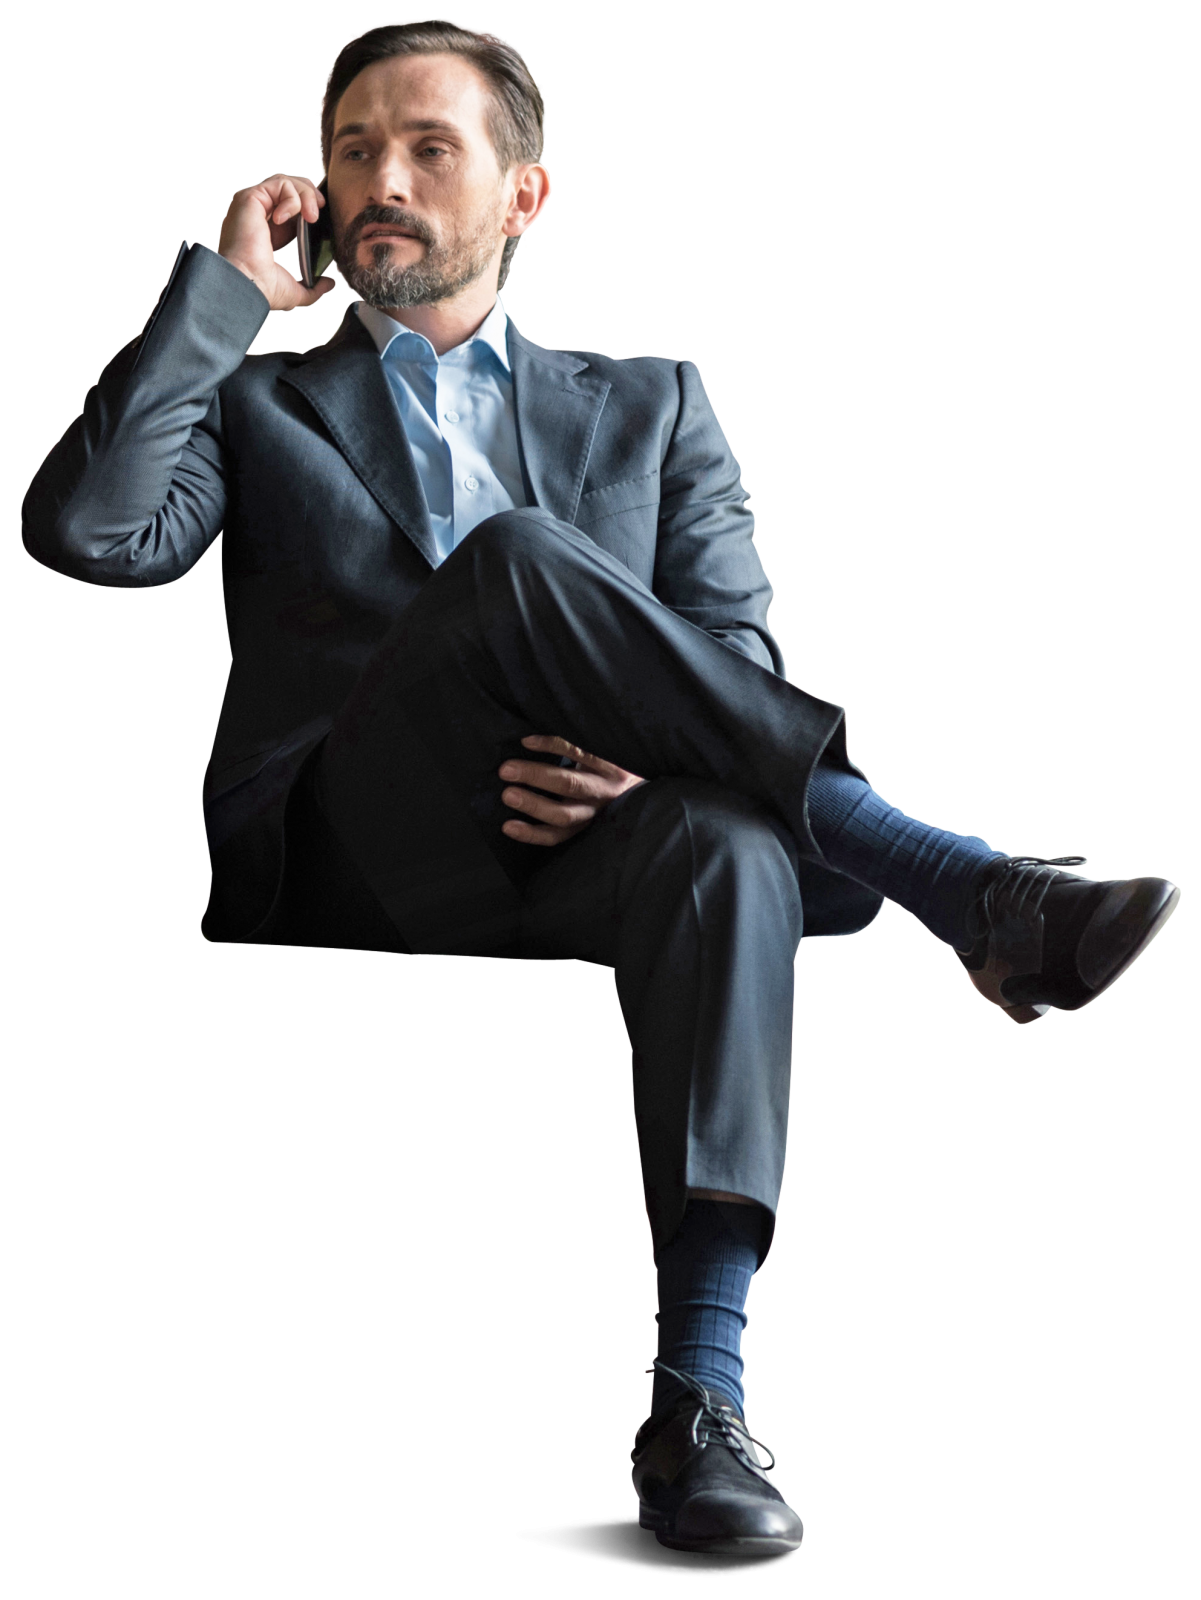 Humans clipart cutout. Office businessman sitting with